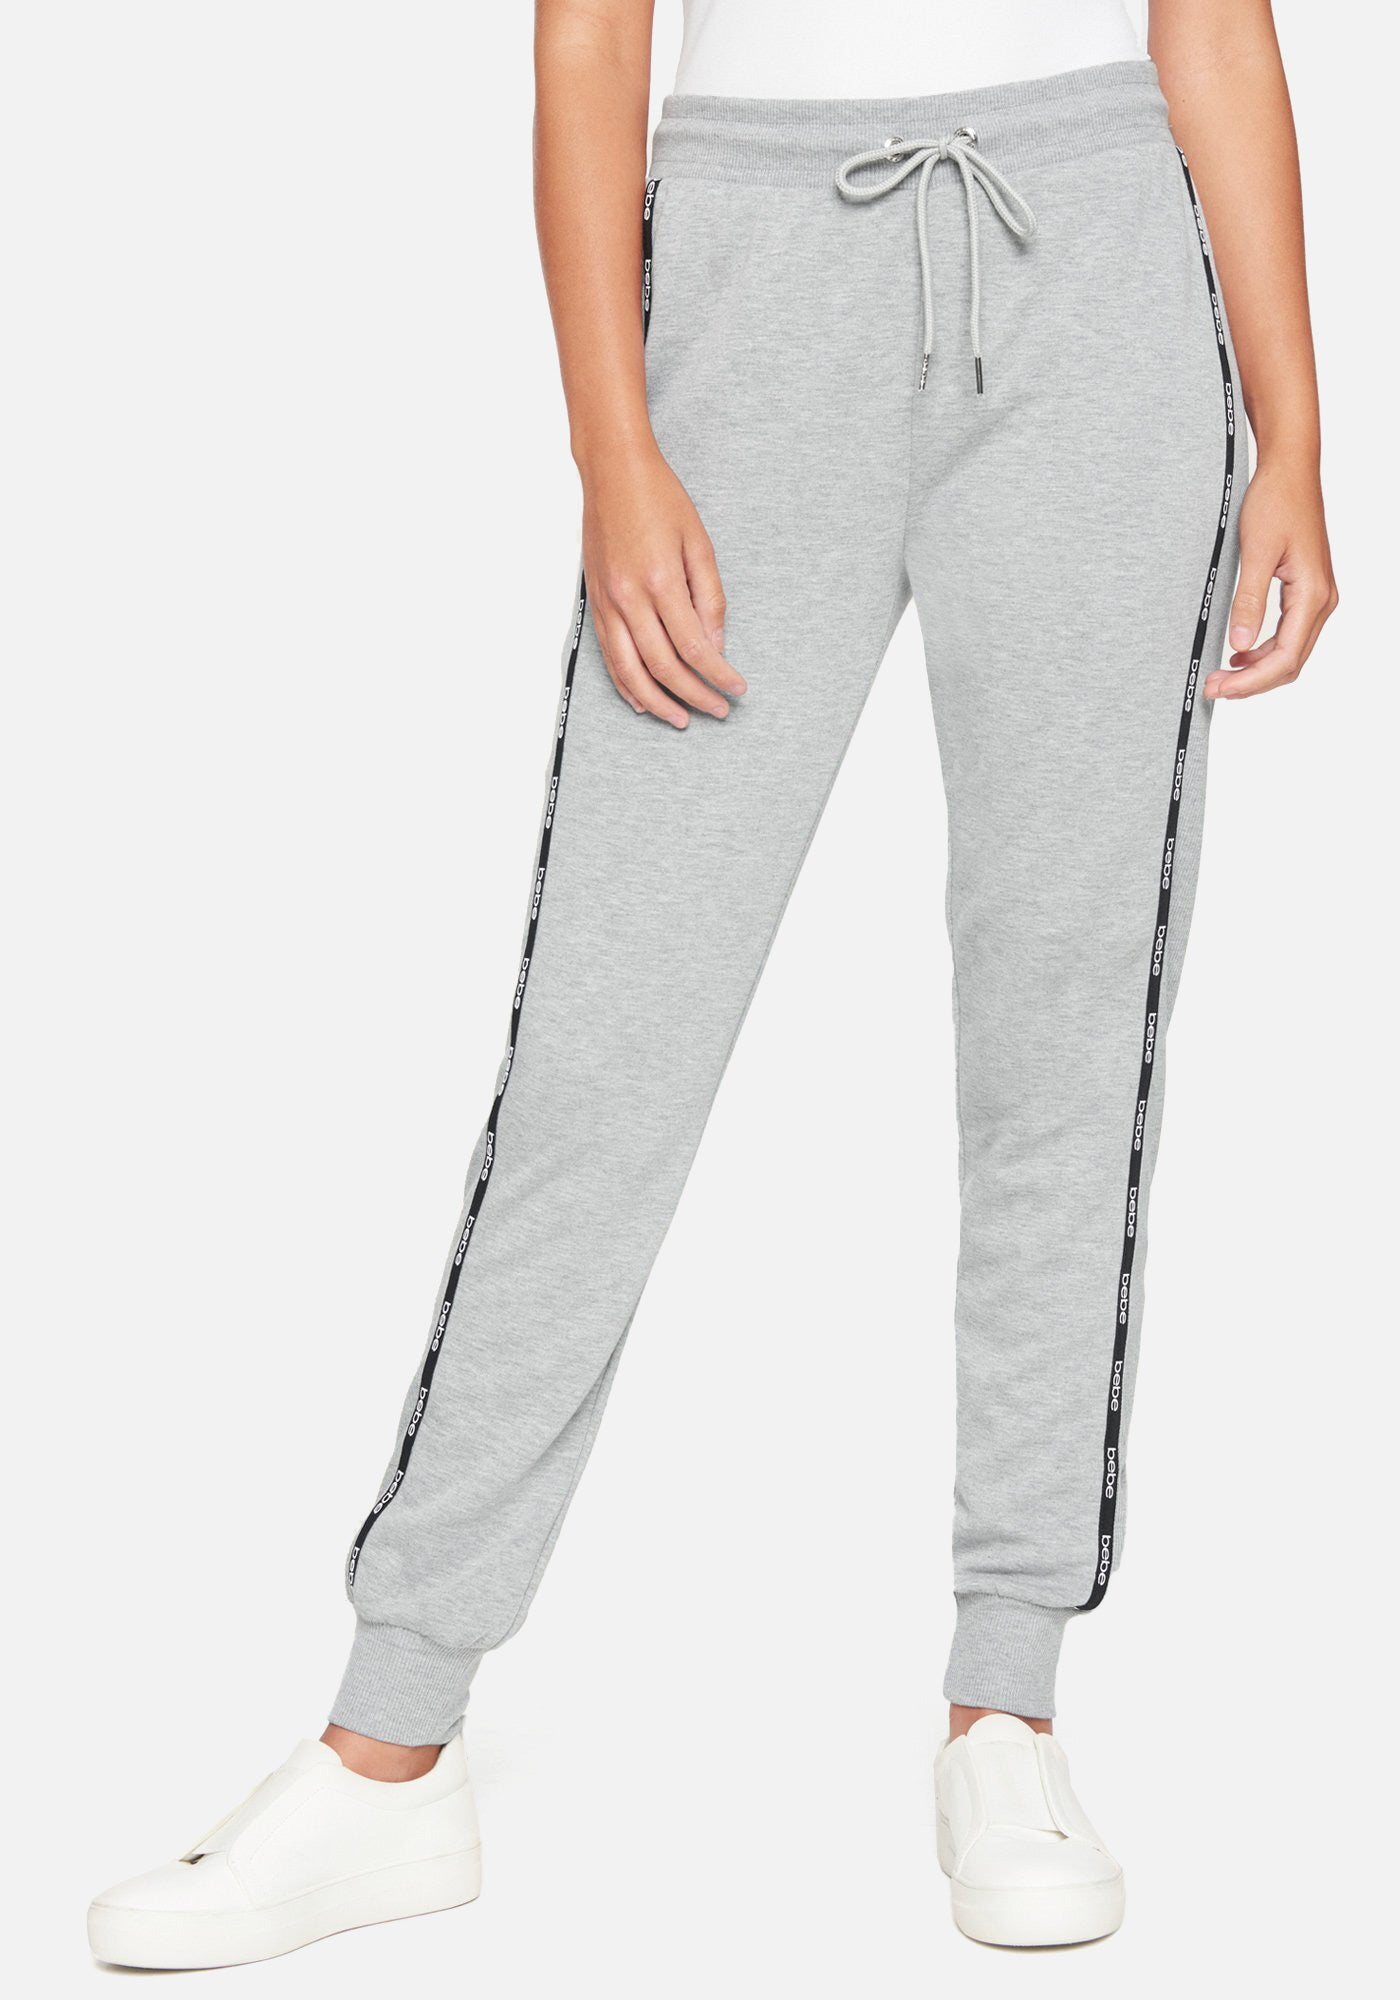 Bebe Women's Logo Heathered Jogger Pant, Size Small in Heather Grey Spandex